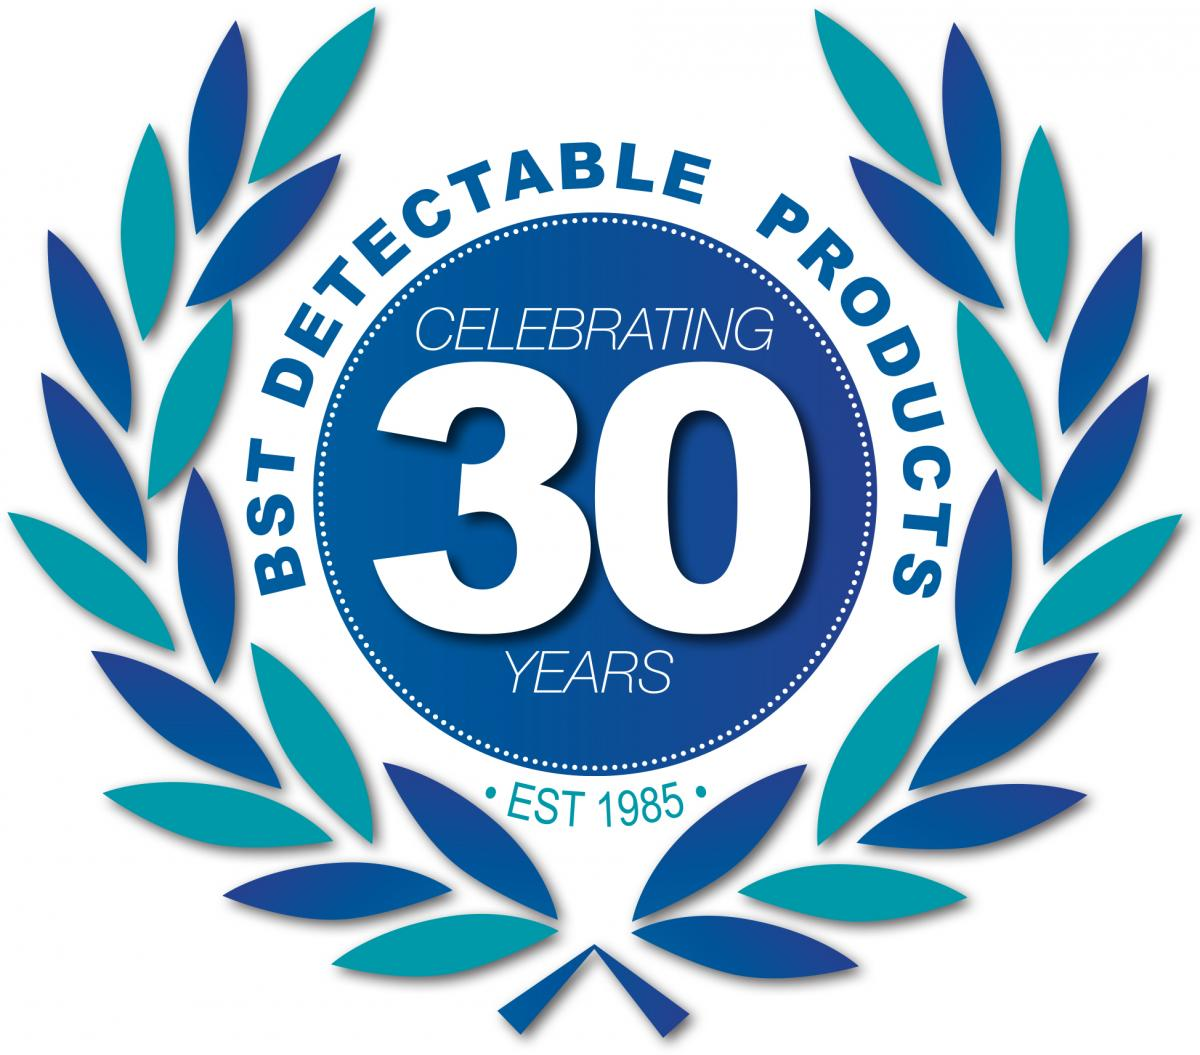 BST Celebrate 30 Years of Business